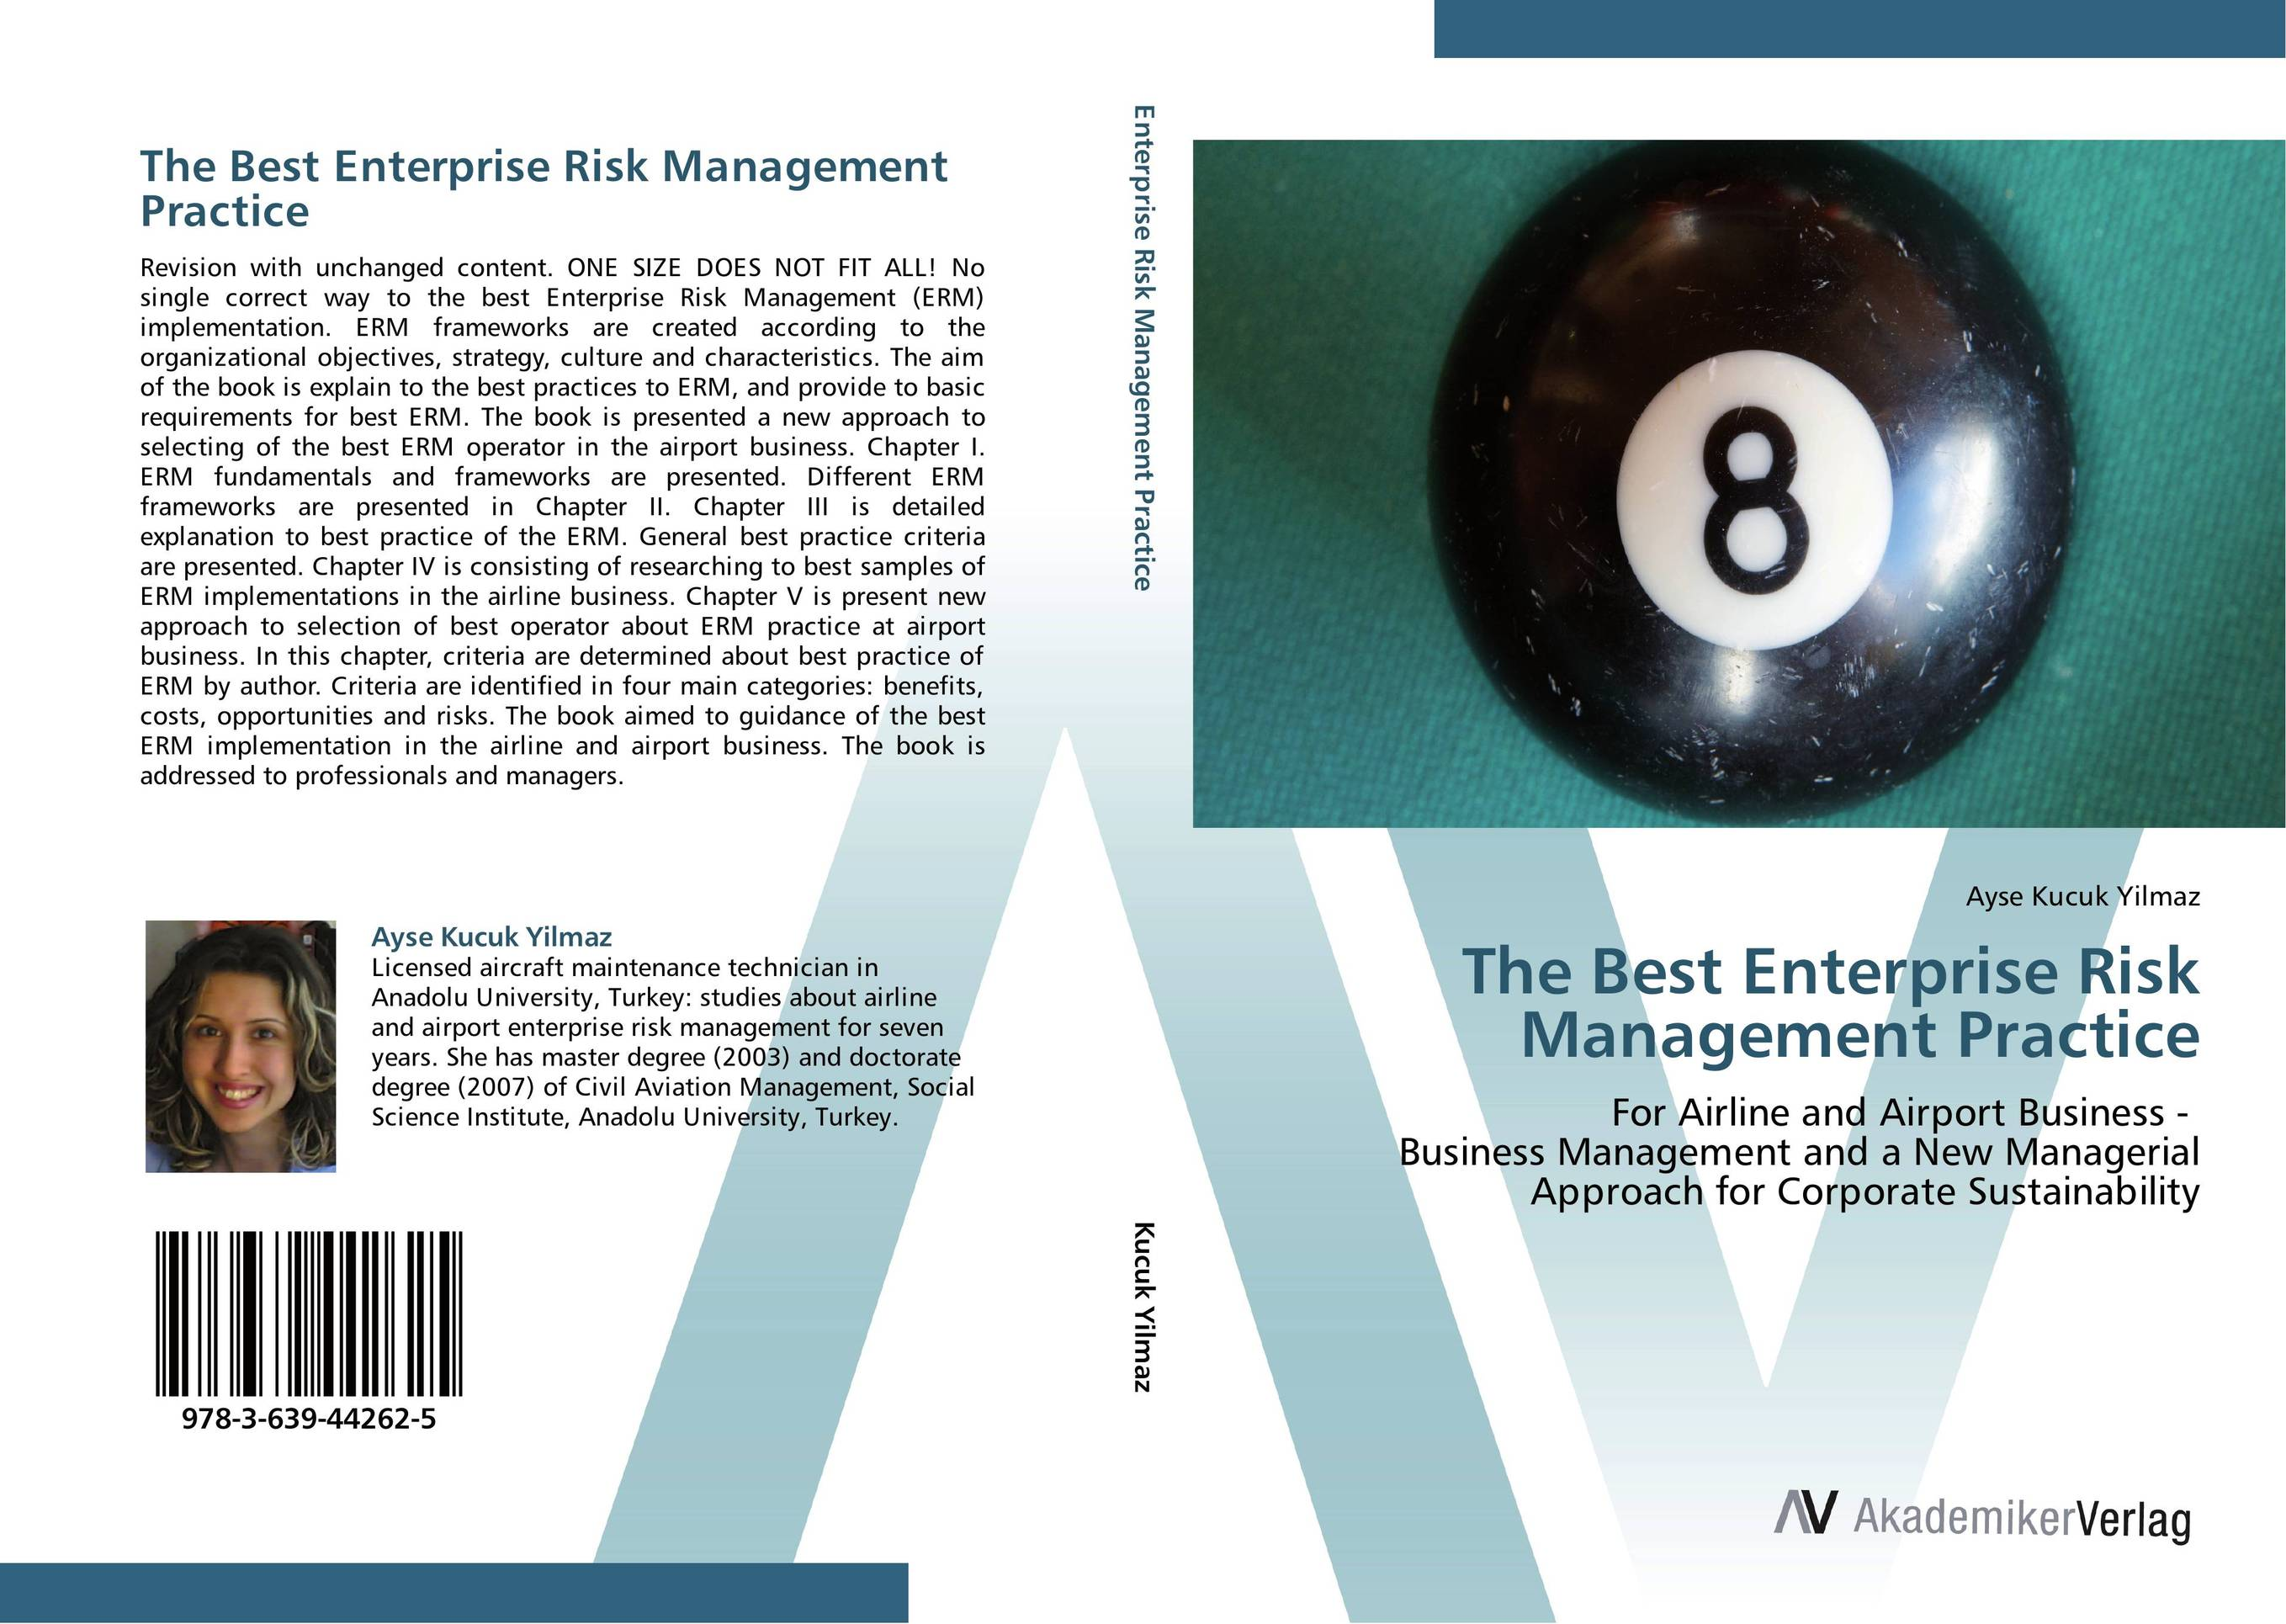 The Best Enterprise Risk Management Practice sim segal corporate value of enterprise risk management the next step in business management